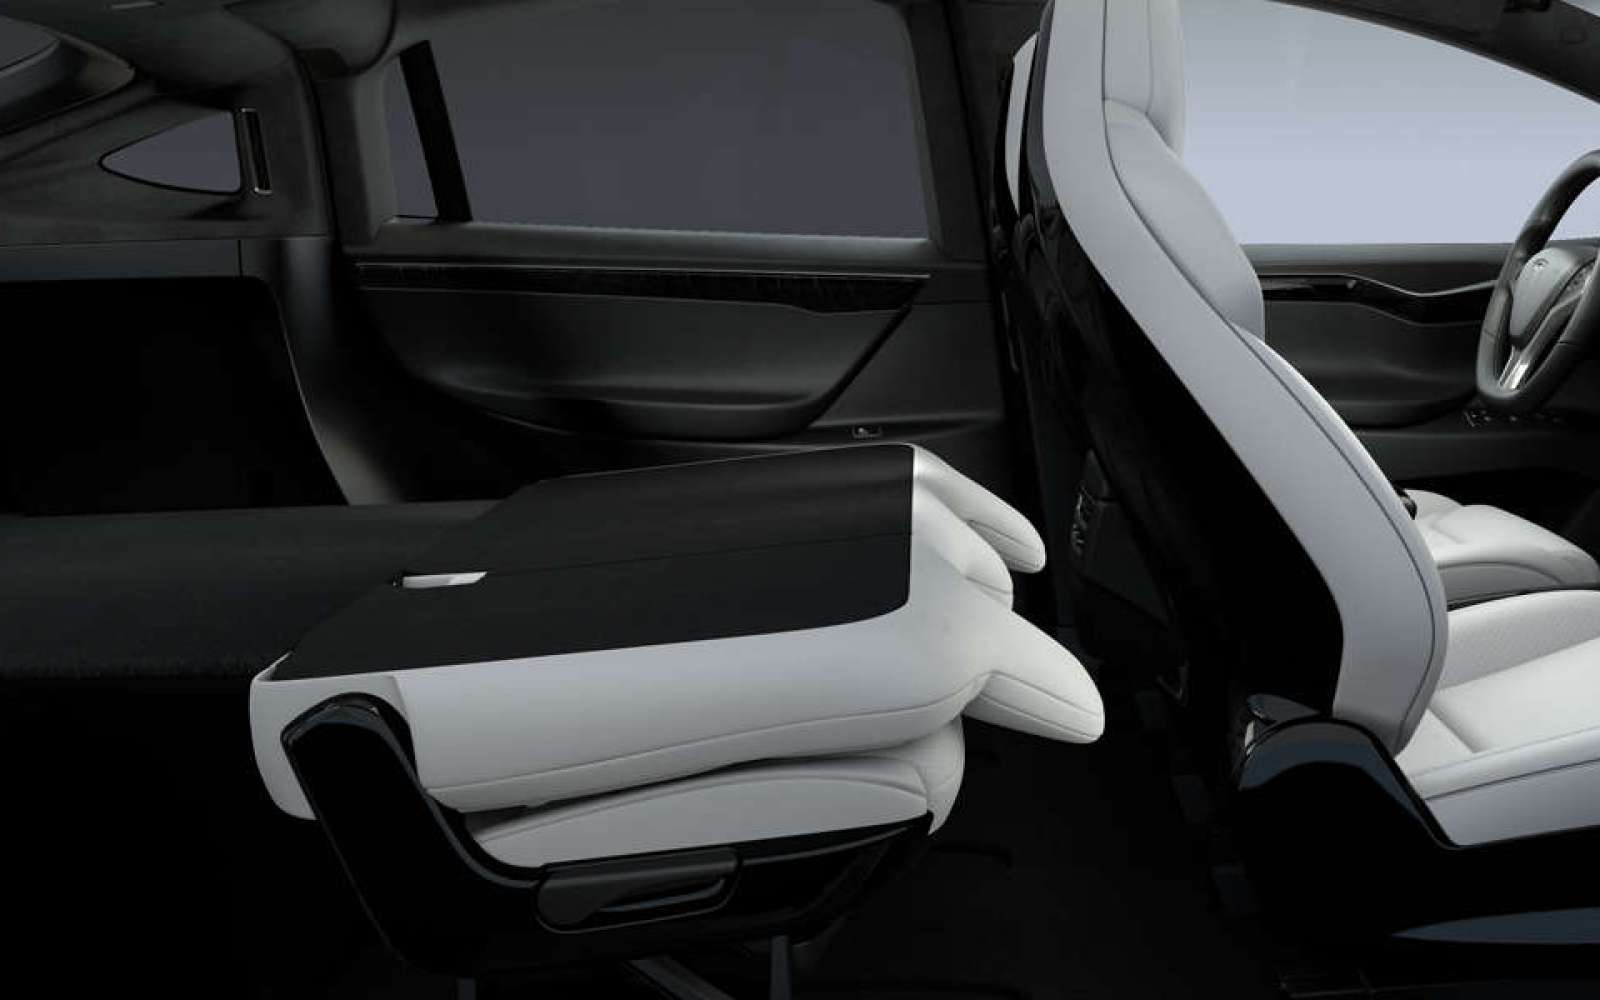 Tesla introduces new fold-flat seats config in Model X, making it SUV with best-in-class cargo